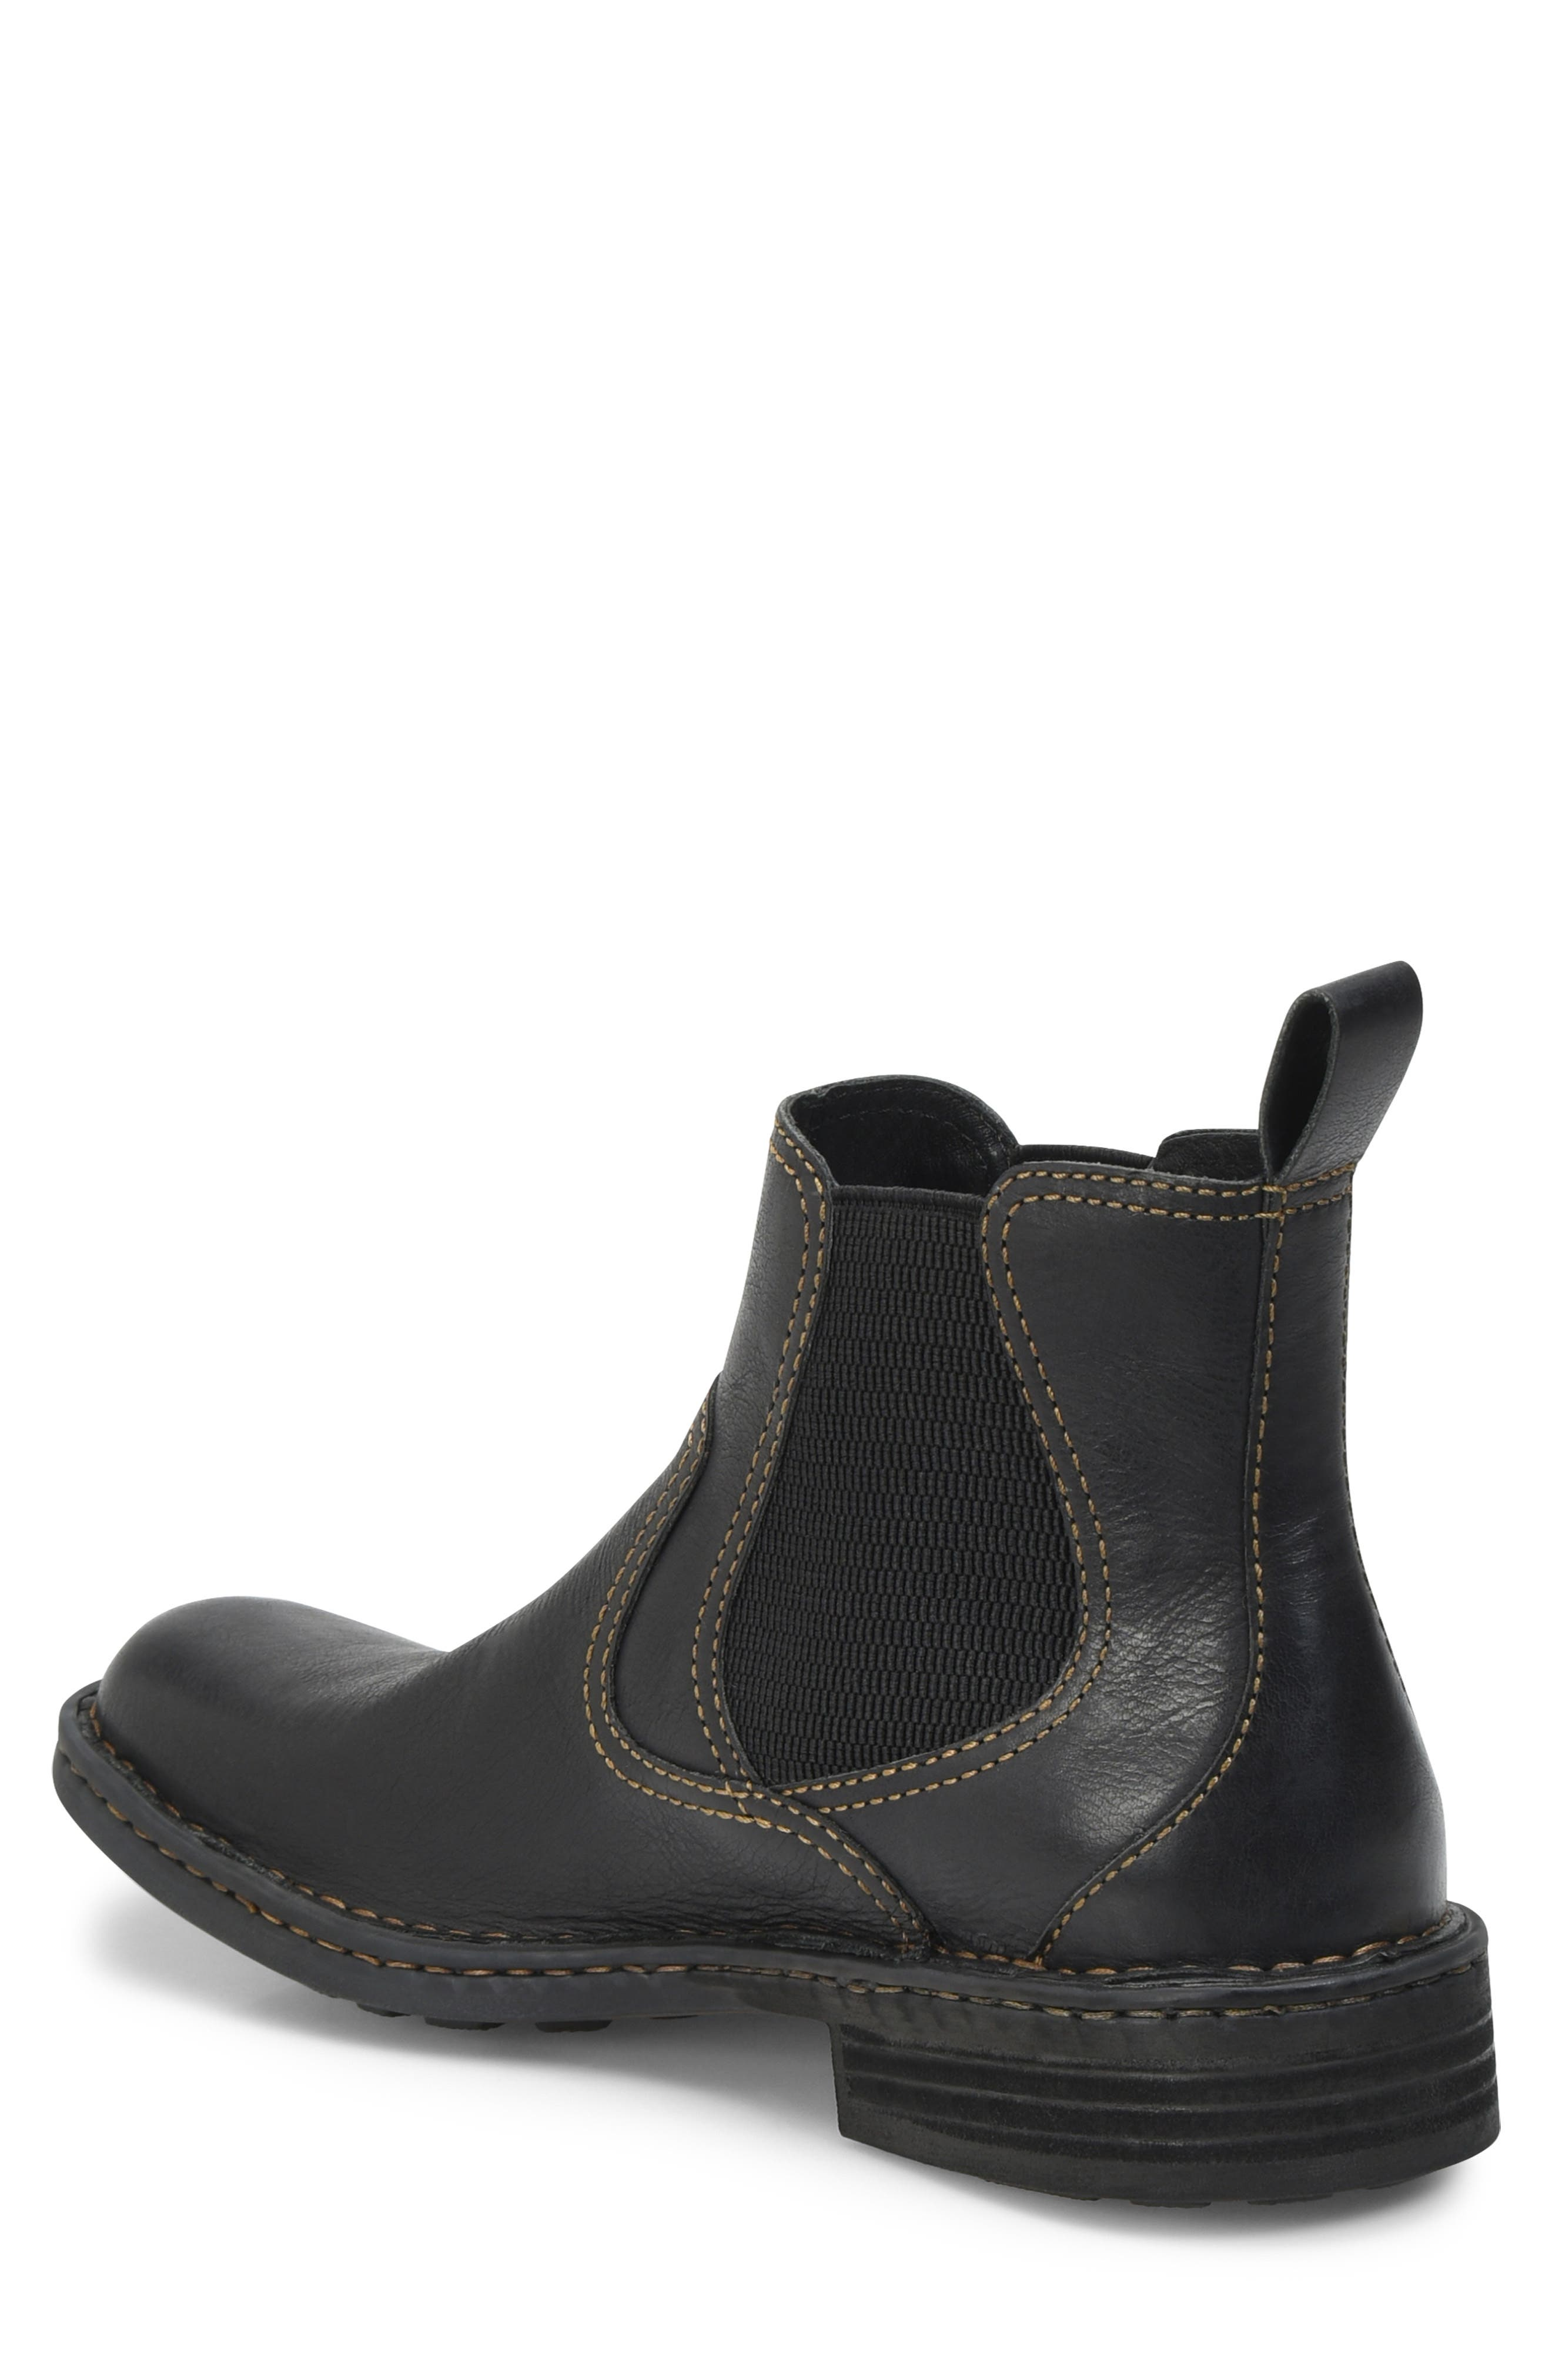 eb36cdee4a0 Mens Boots